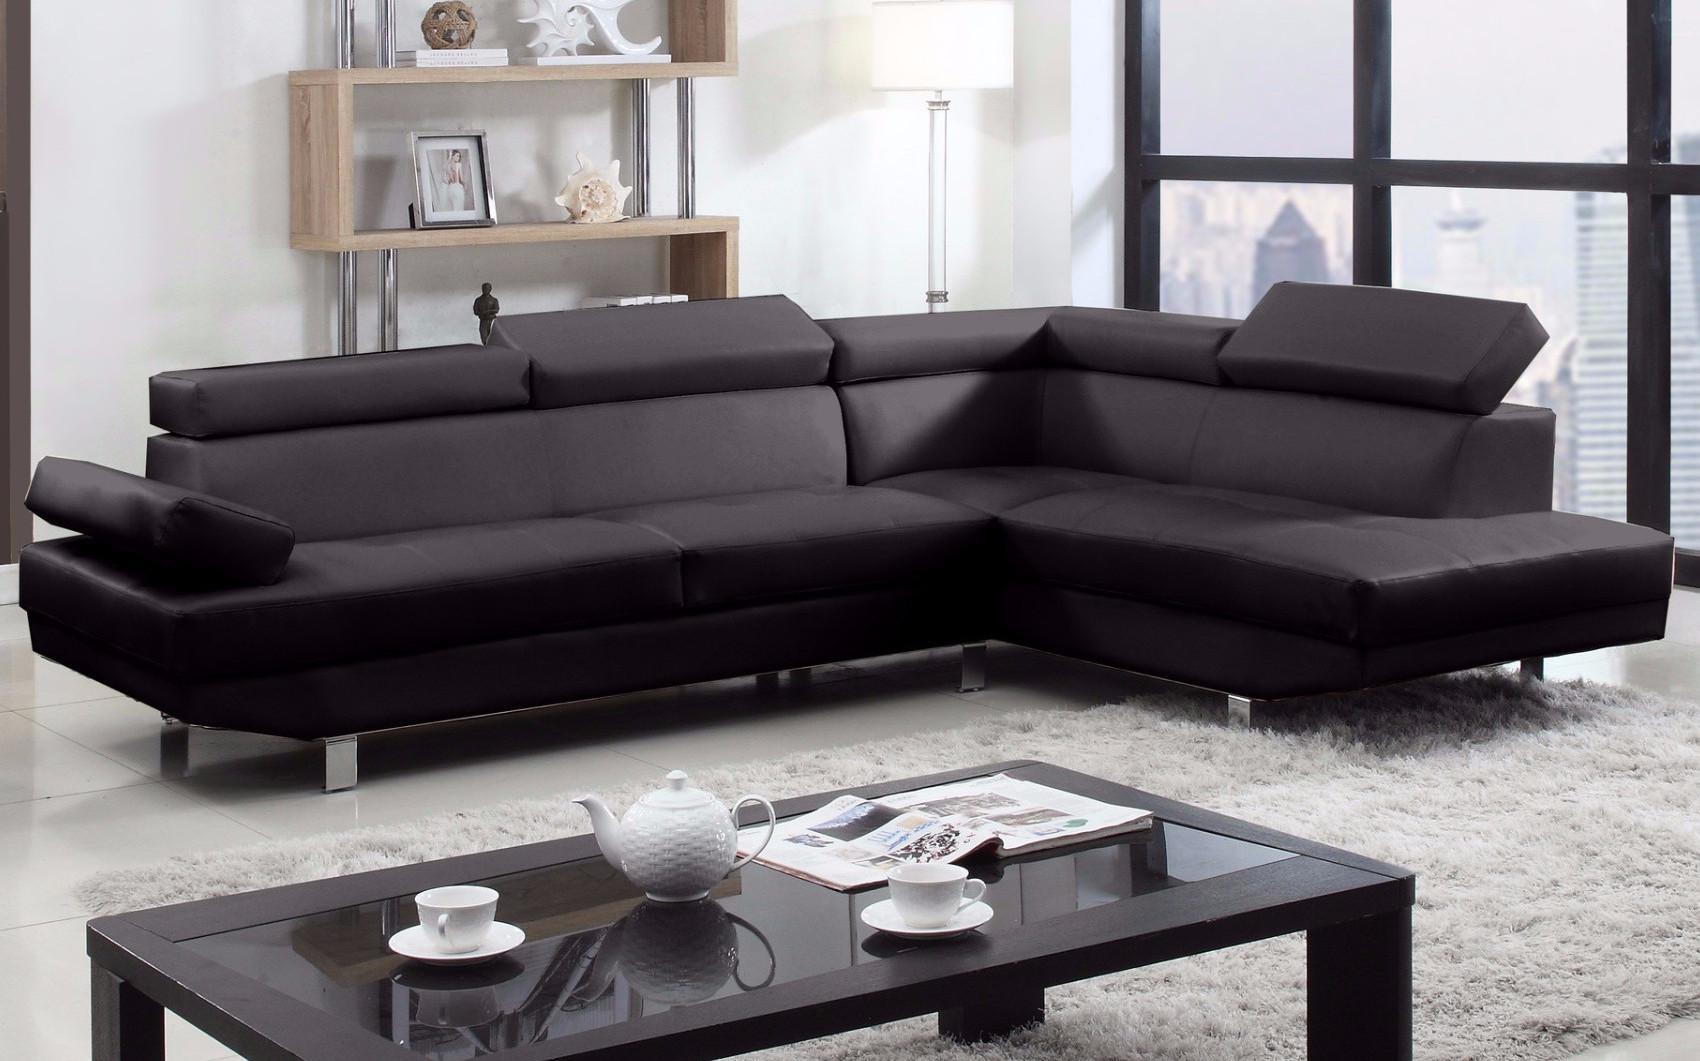 martino leather chaise sectional sofa 2 piece apartment and protection spray 20 collection of sofas ideas